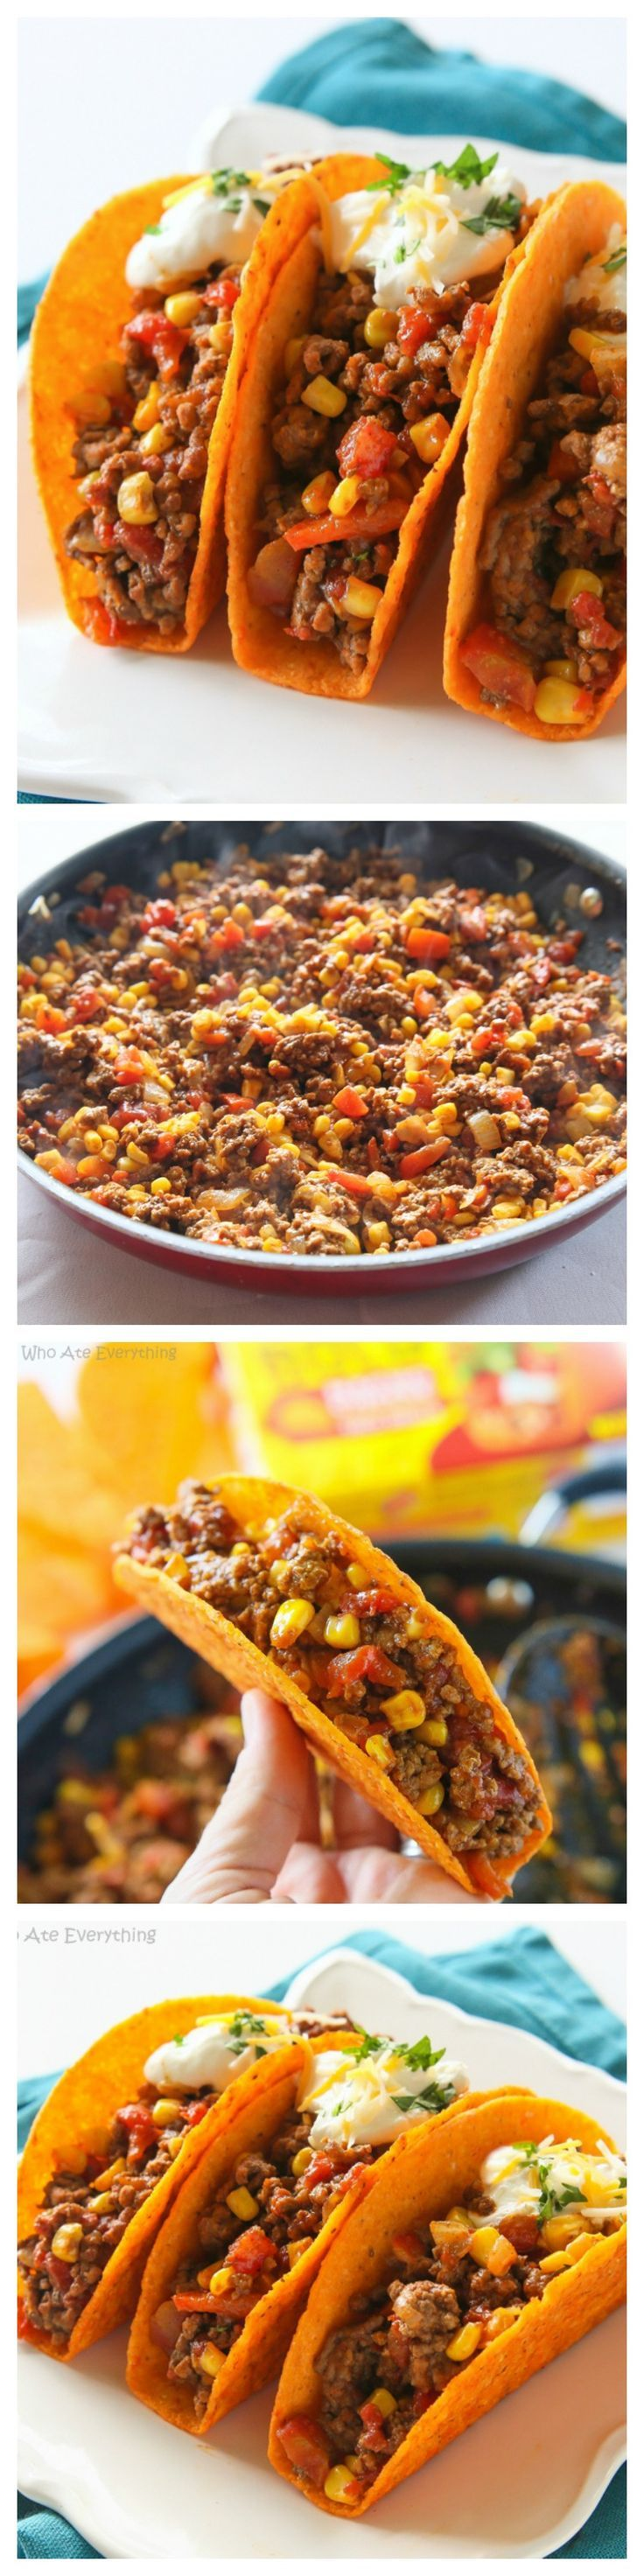 These Texas Tacos are a Tex-Mex twist on your classic taco. It's filled with taco meat, bell peppers, onions, diced tomatoes, and corn all in a nacho cheese shell. Yum!